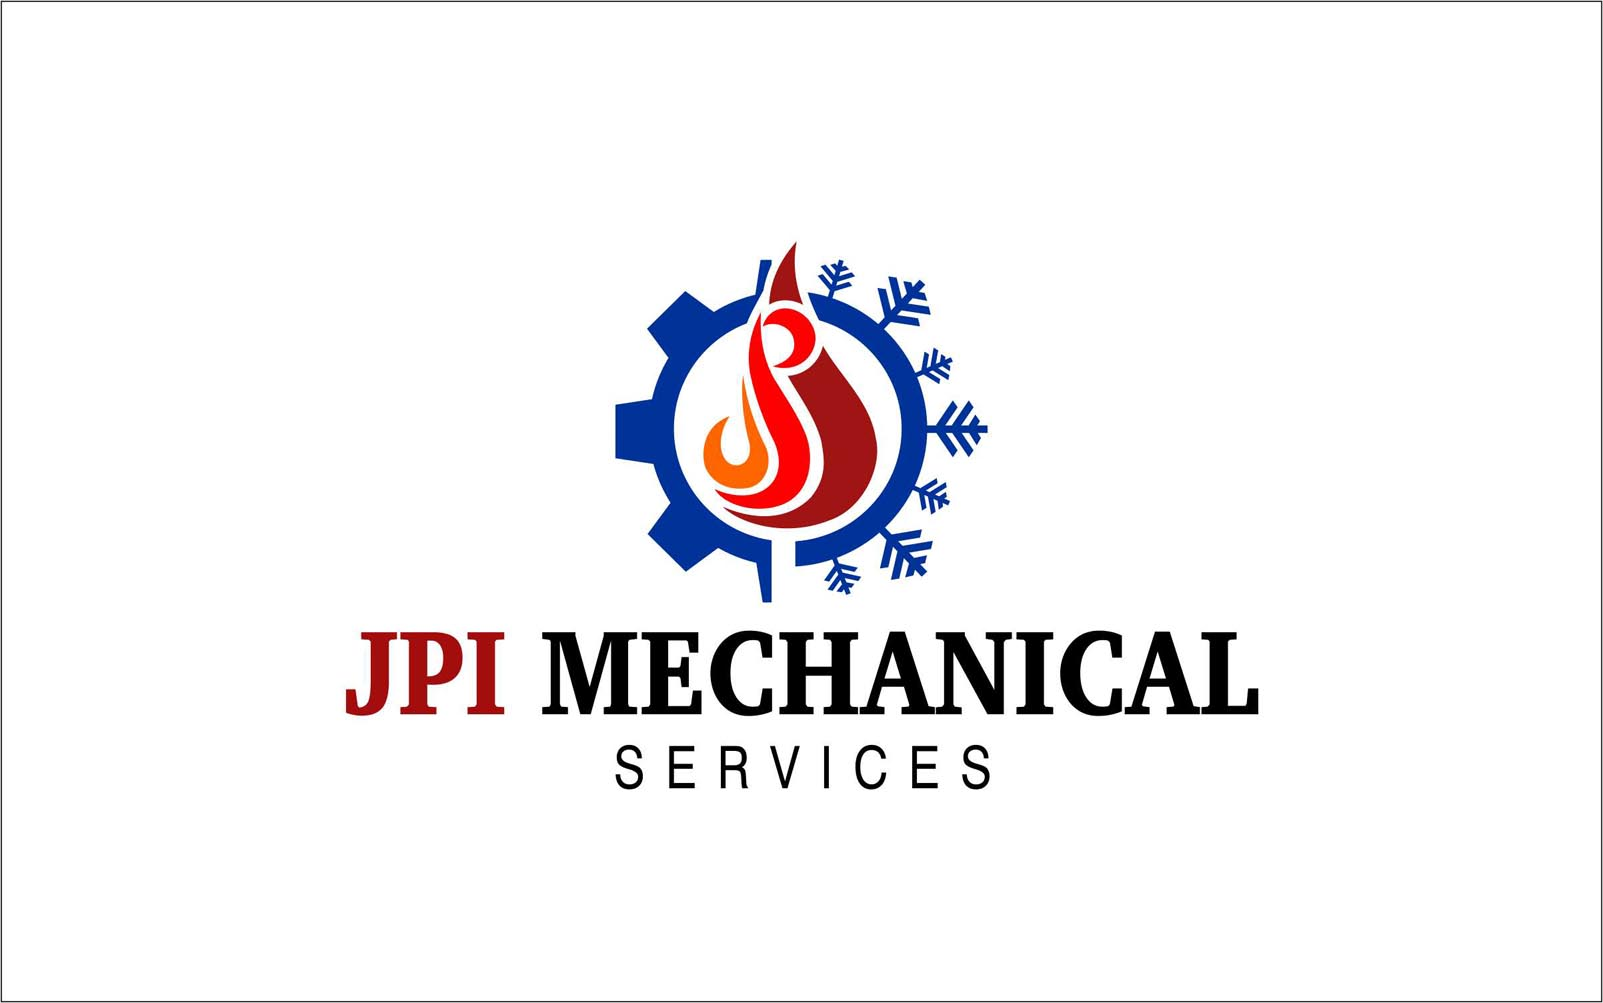 Logo Design by Niraj Dhimmar - Entry No. 114 in the Logo Design Contest Inspiring Logo Design for JPI Mecanical Services.